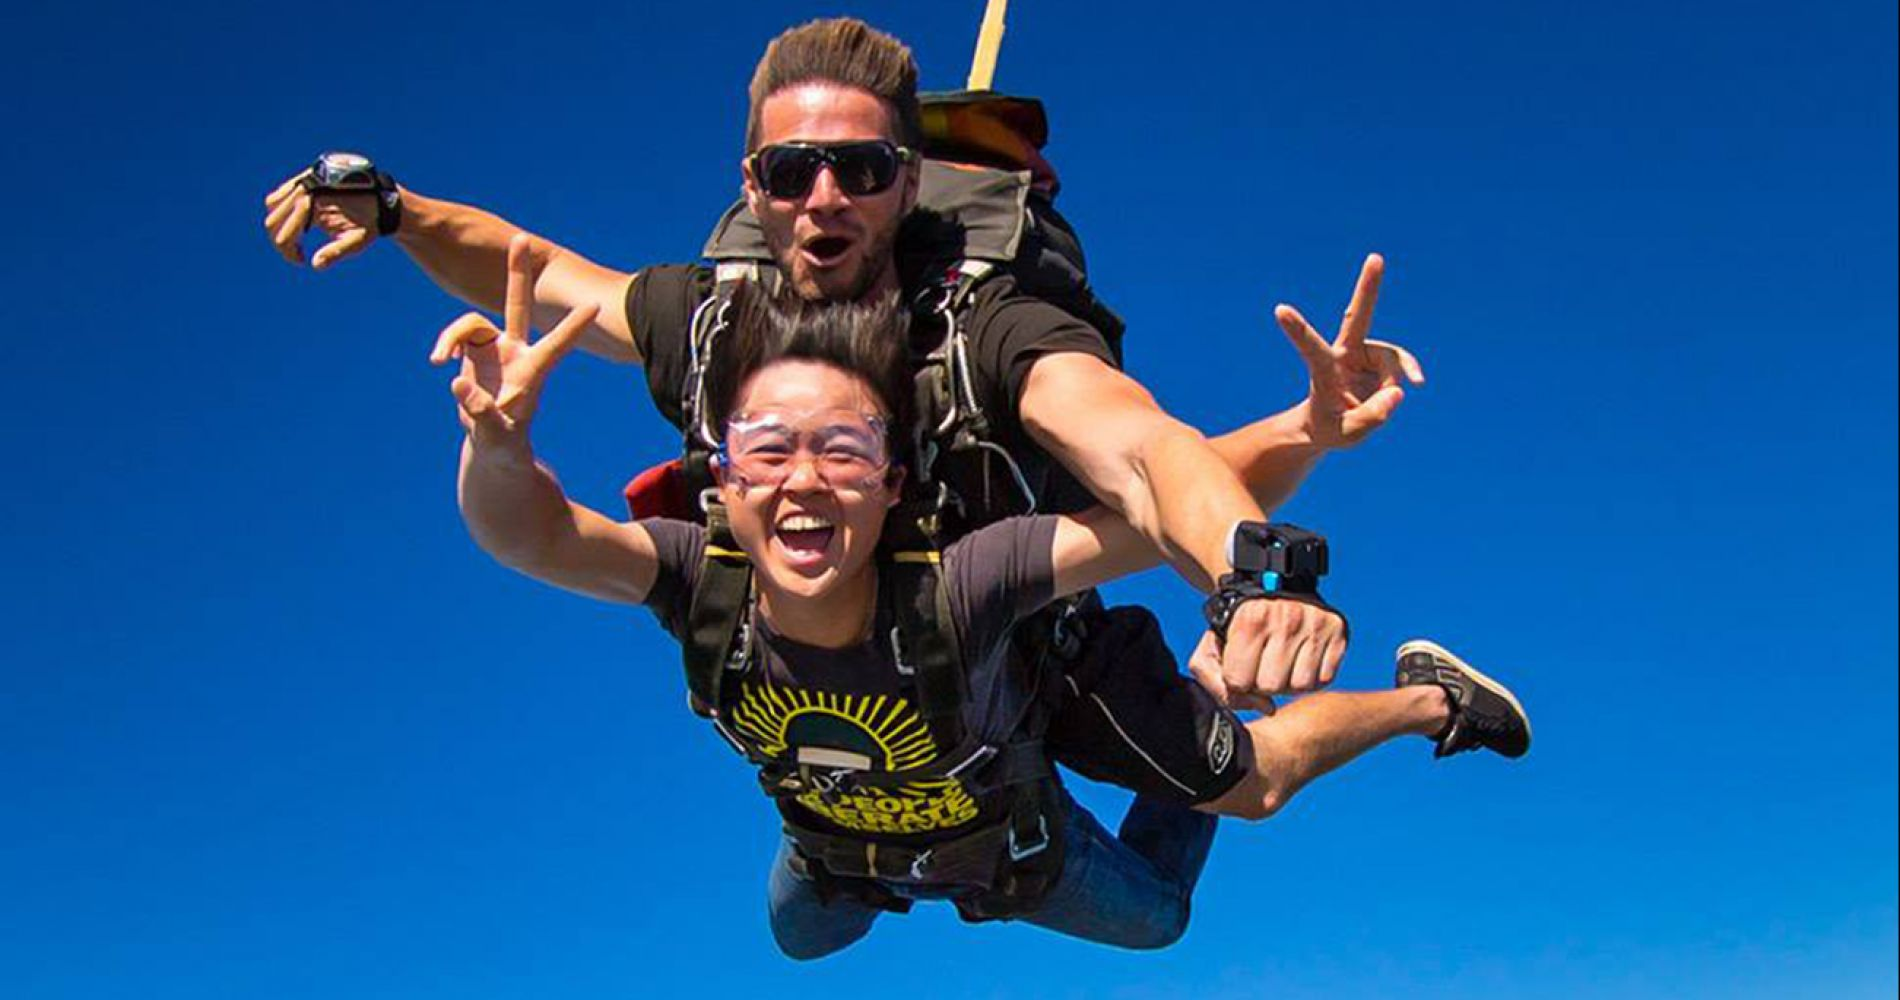 Breathtaking tandem skydiving in Byron Bay